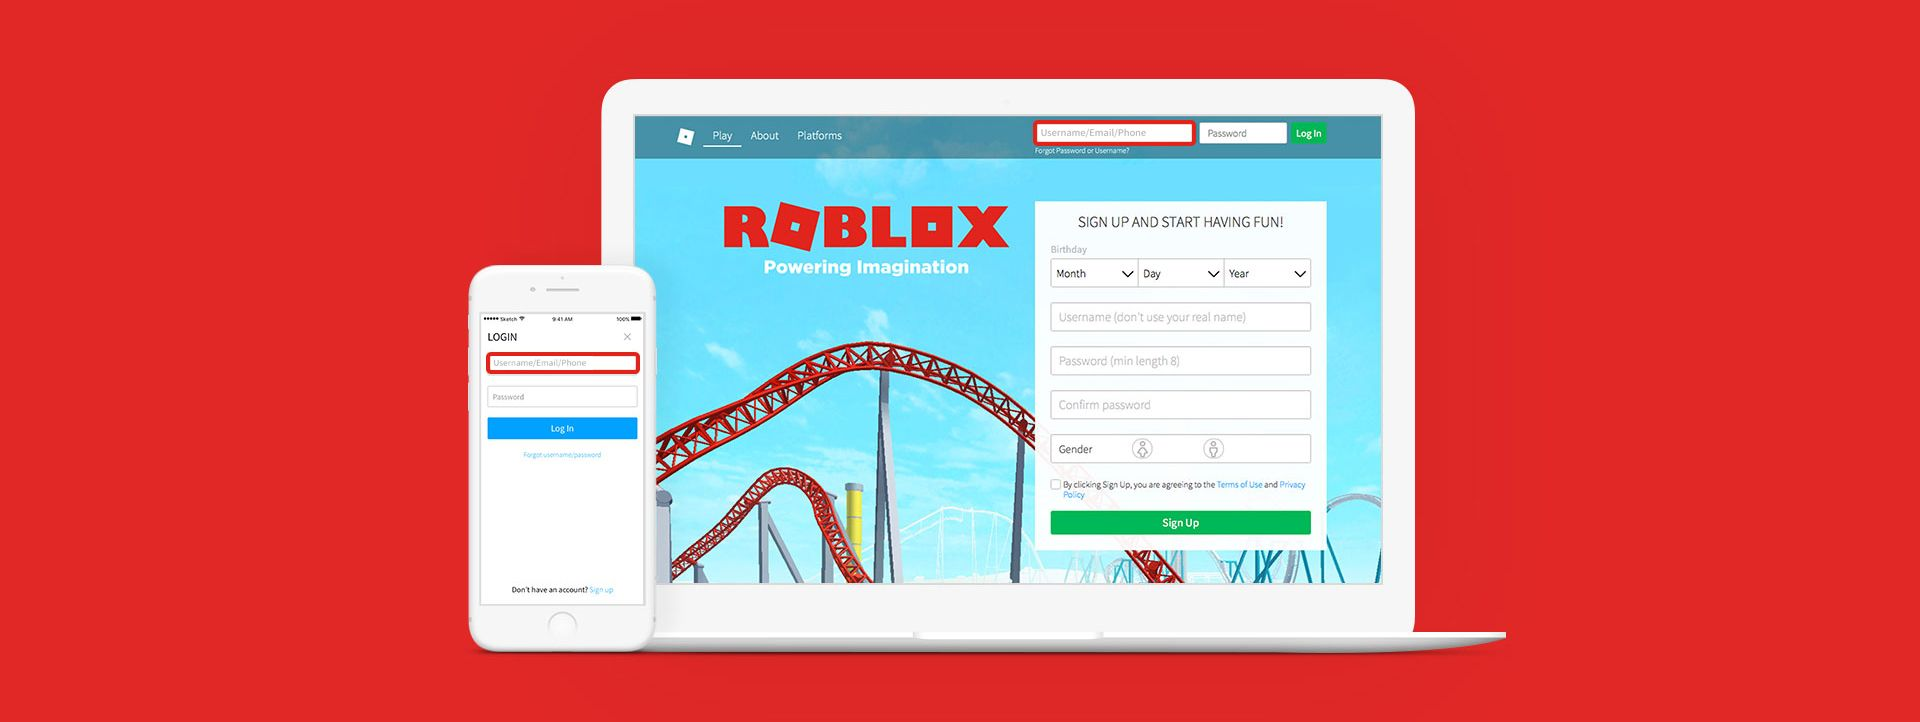 New Ways To Log In To Roblox Roblox Blog Roblox Roblox Roblox Outrageous Ideas